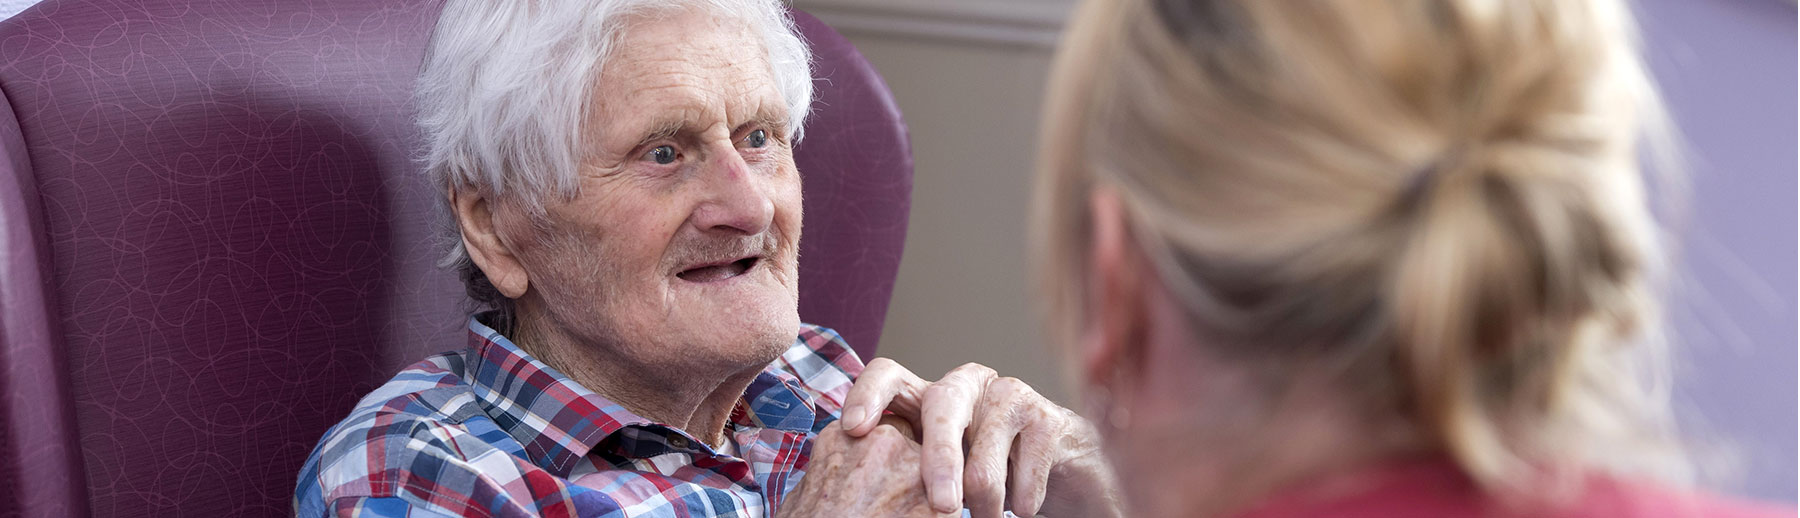 care-home-patient-talking-to-carer